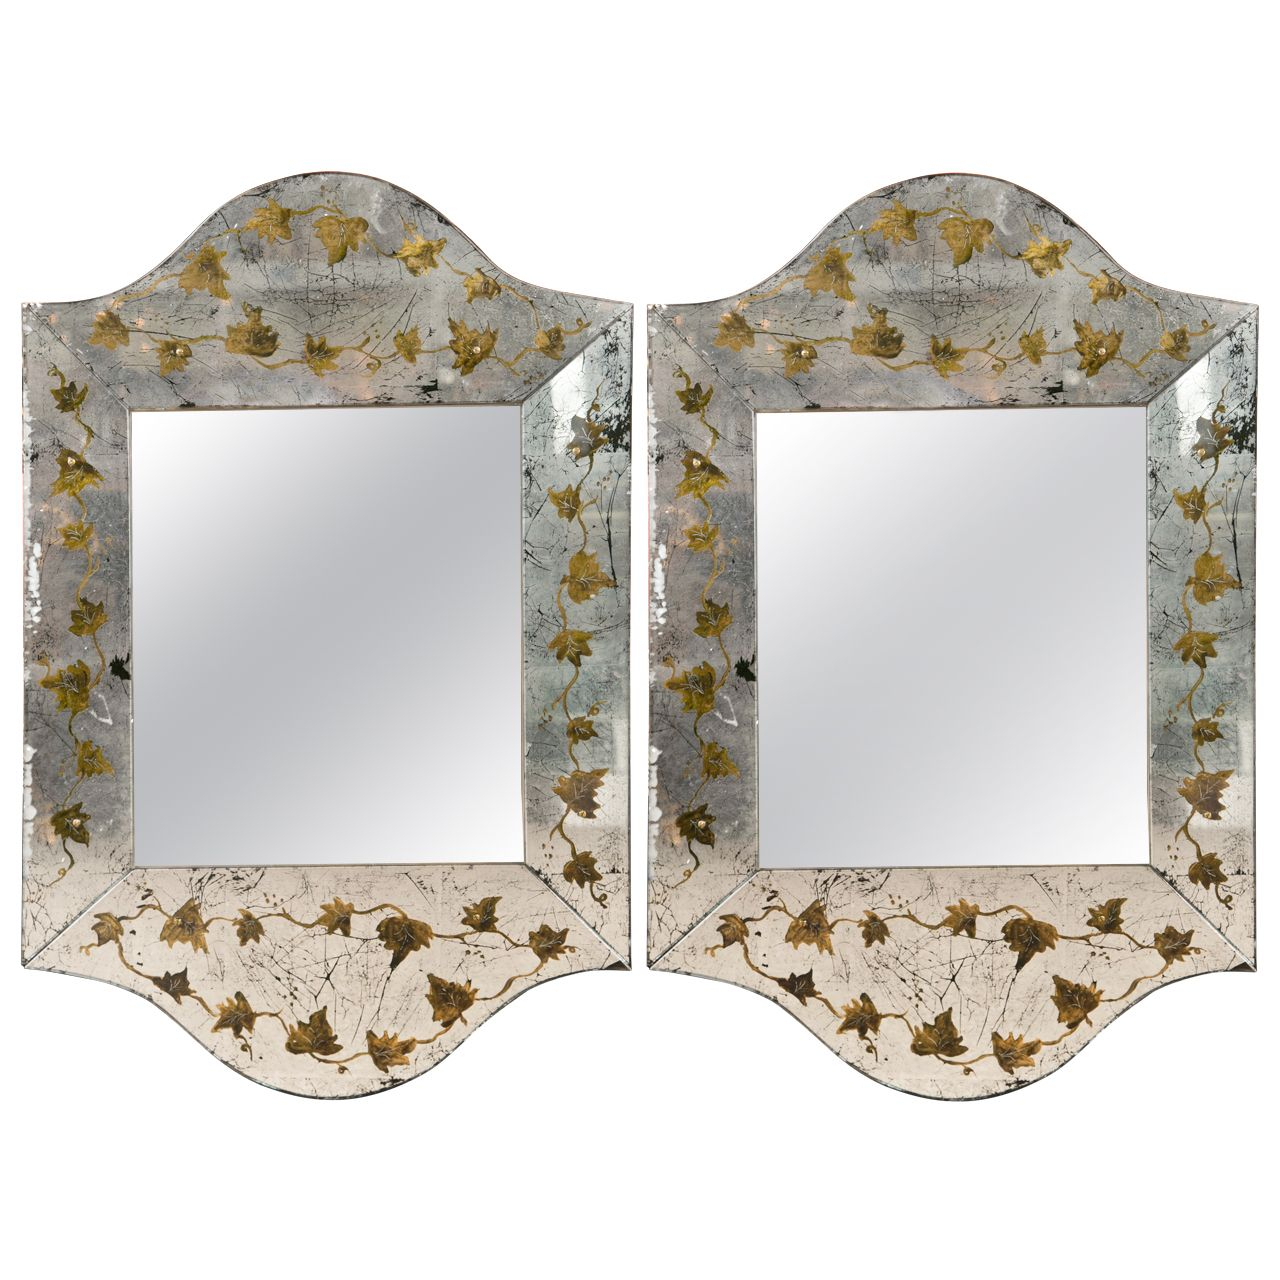 Pair Of Eglomise Glass Scalloped Mirrors | Verre Eglomise Within Dariel Tall Arched Scalloped Wall Mirrors (Image 15 of 20)